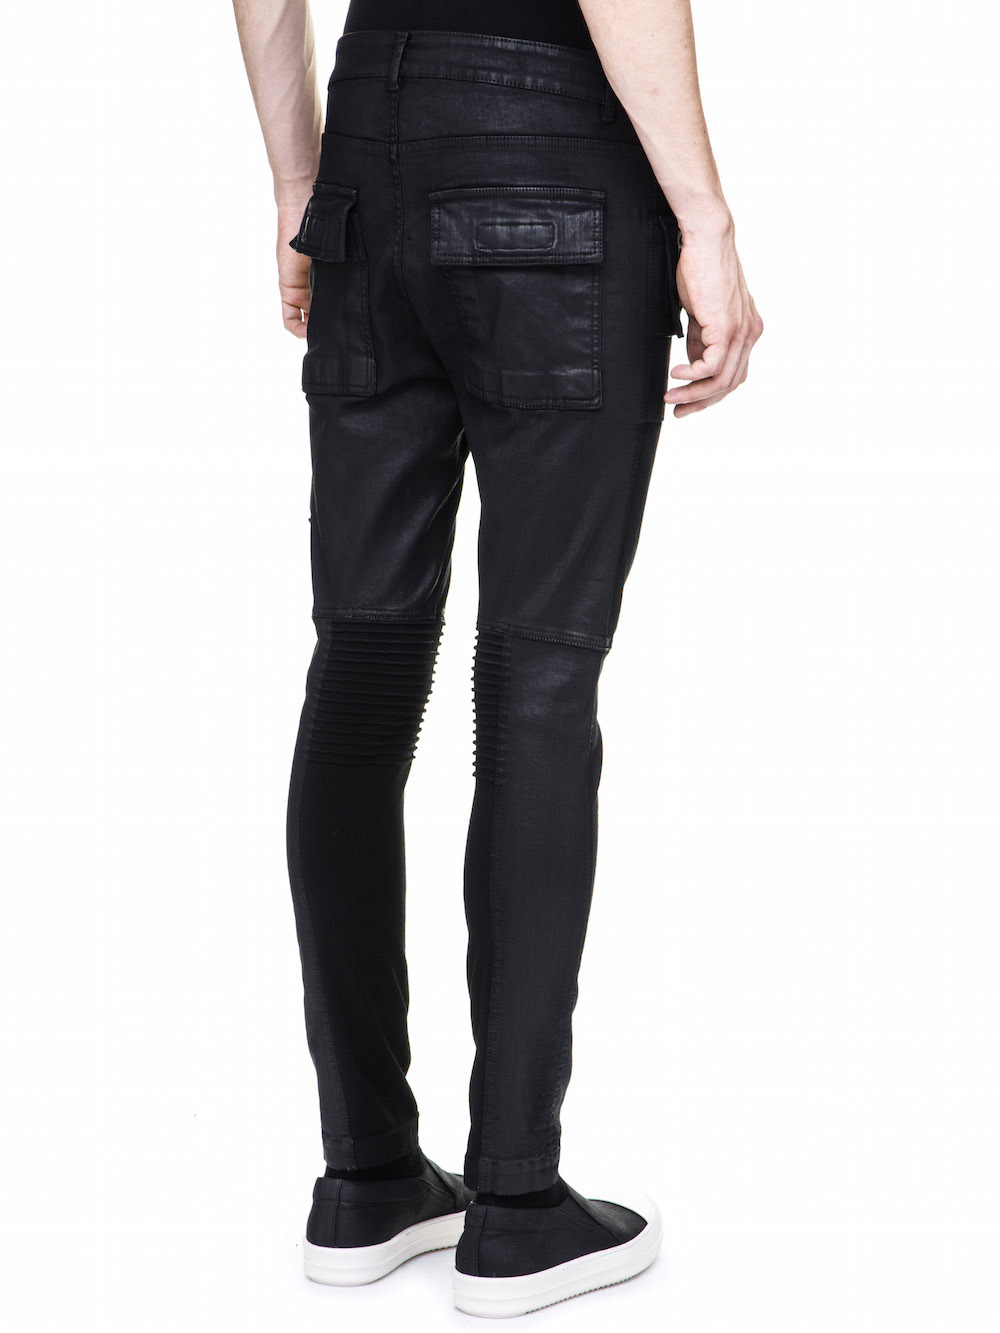 DRKSHDW MEMPHIS CUT JEANS IN 10OZ STRETCH BLACK WAX DENIM